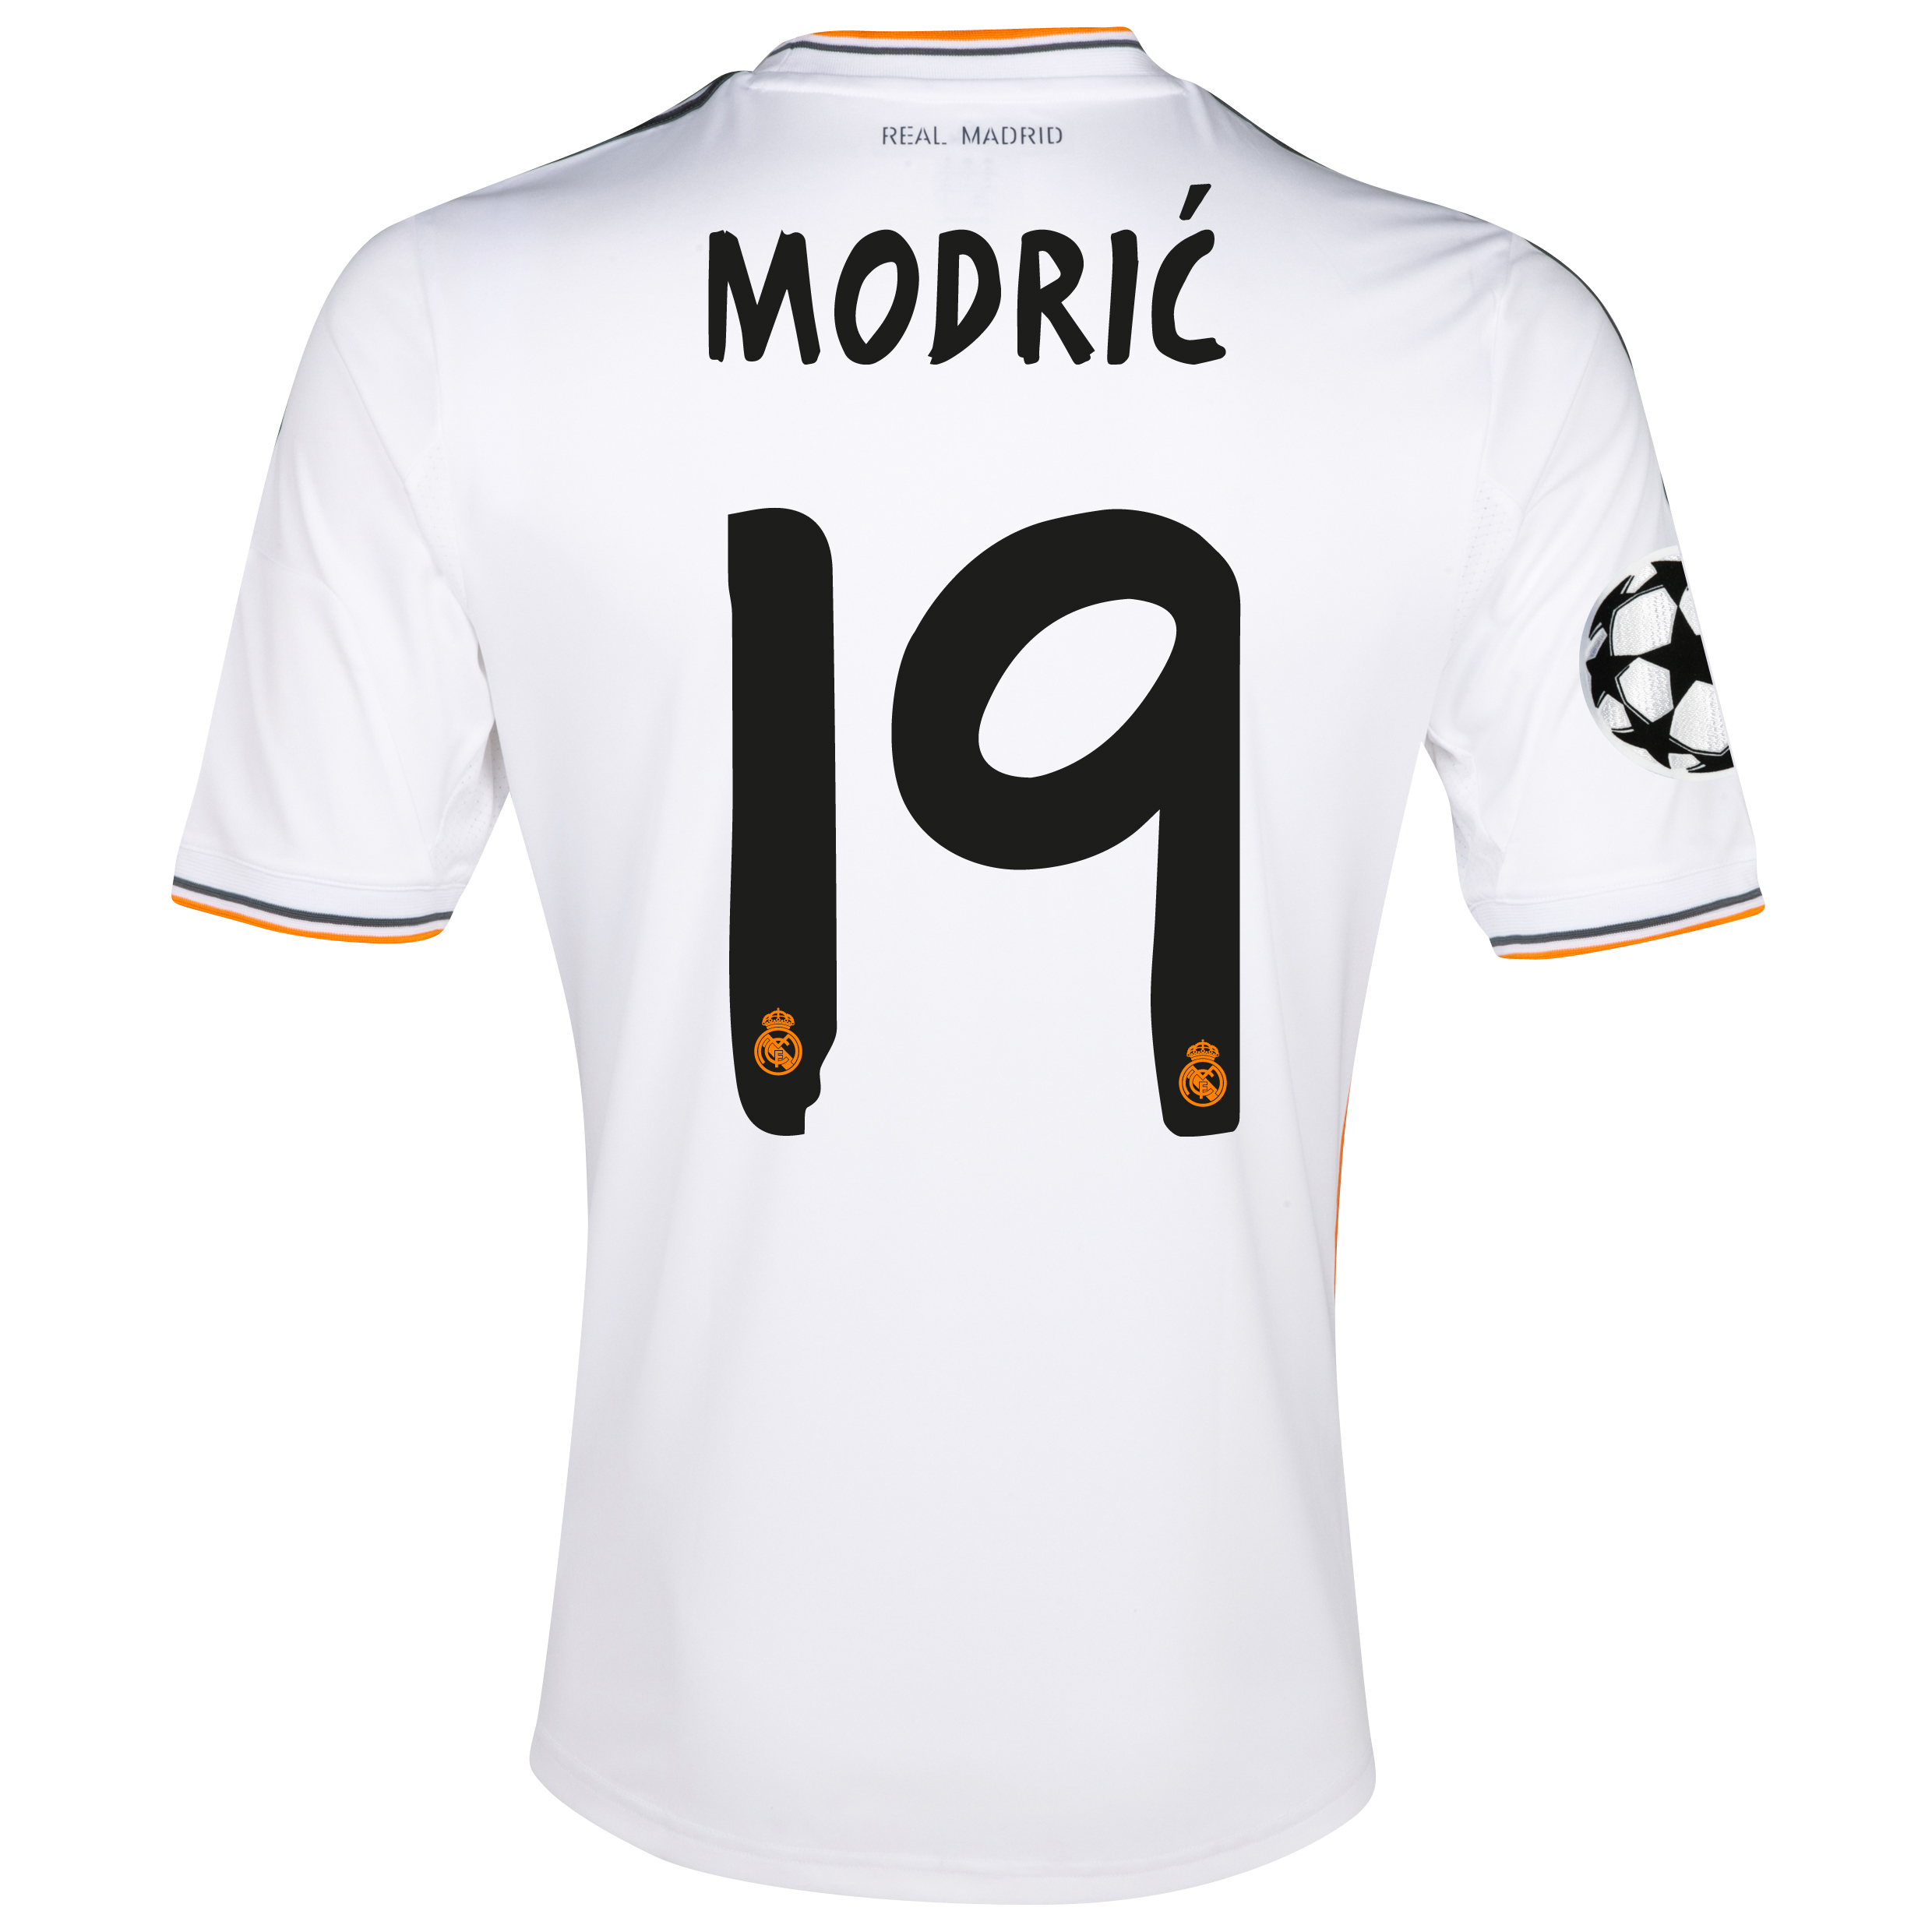 Image of Real Madrid UEFA Champions League Home Shirt 2013/14 with Modric 19 pr, White